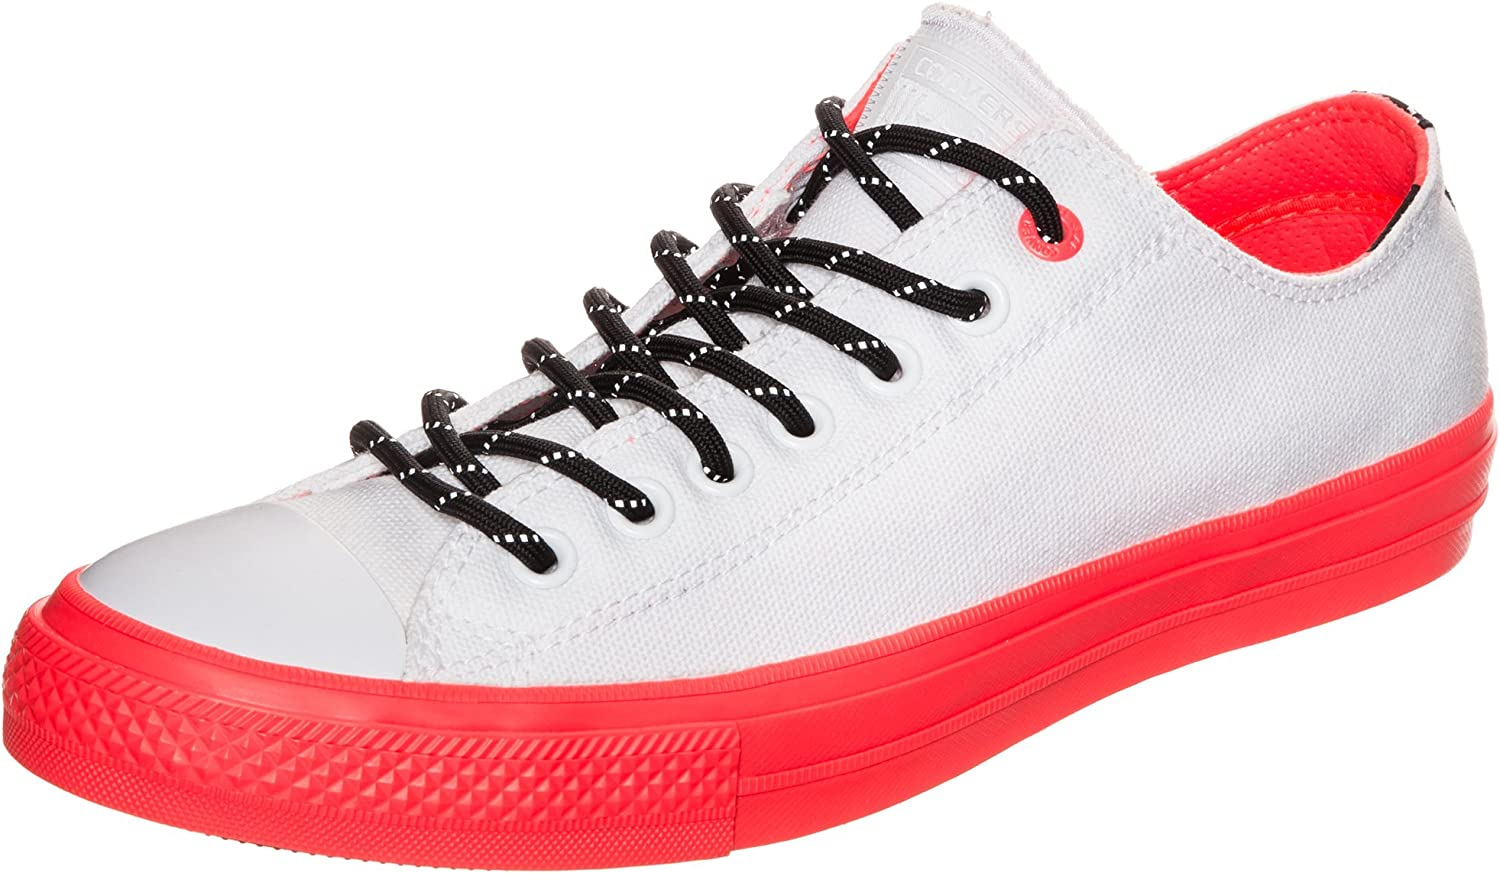 Converse Chuck Taylor All Star Ii Shield Canvas Ox